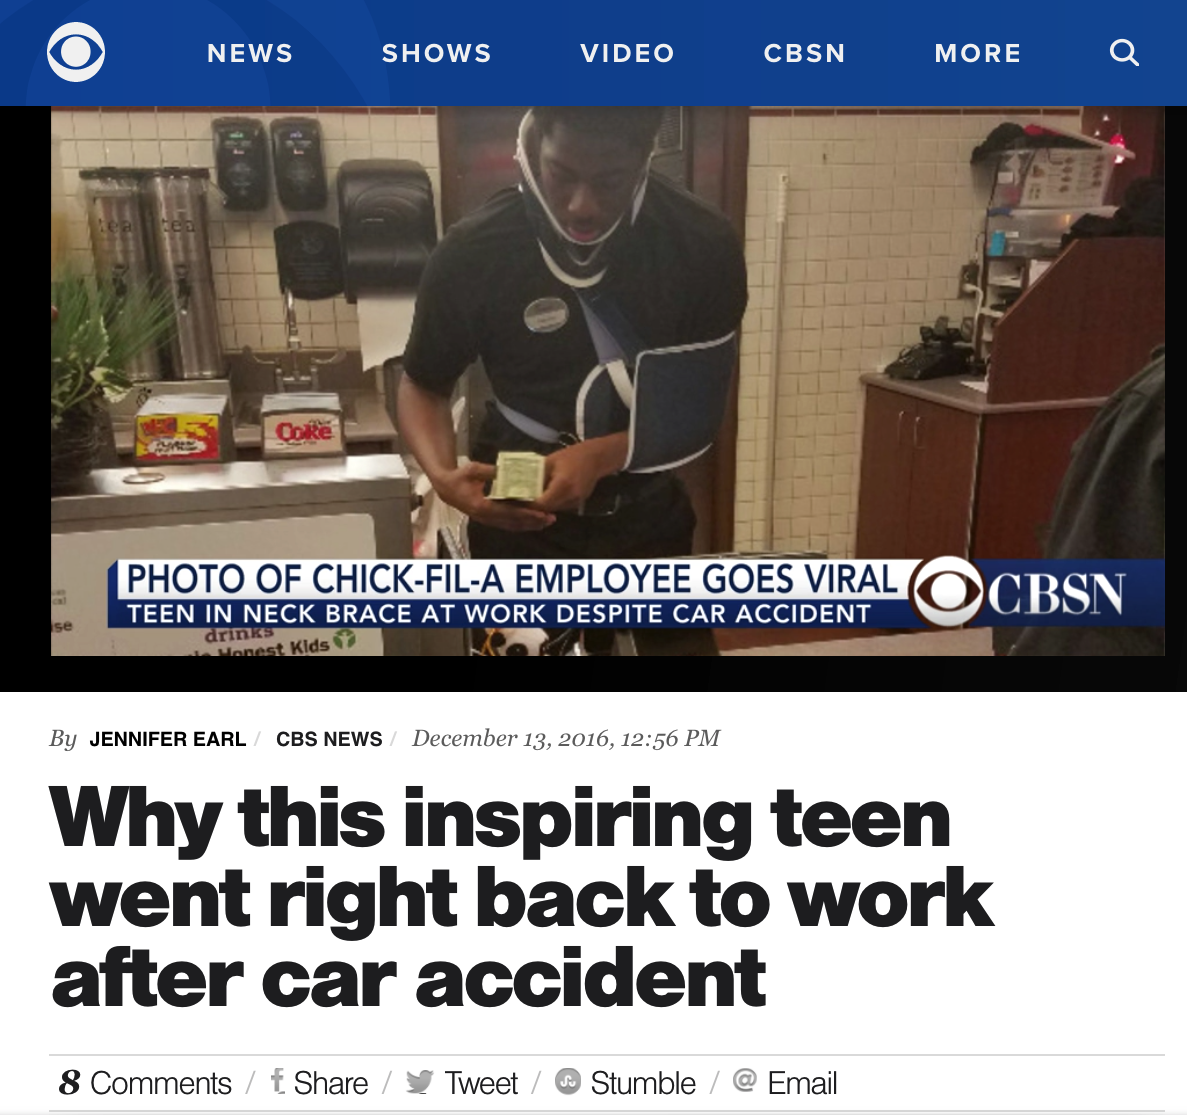 Why This Inspiring Teen Went Right Back to Work After Car Accident